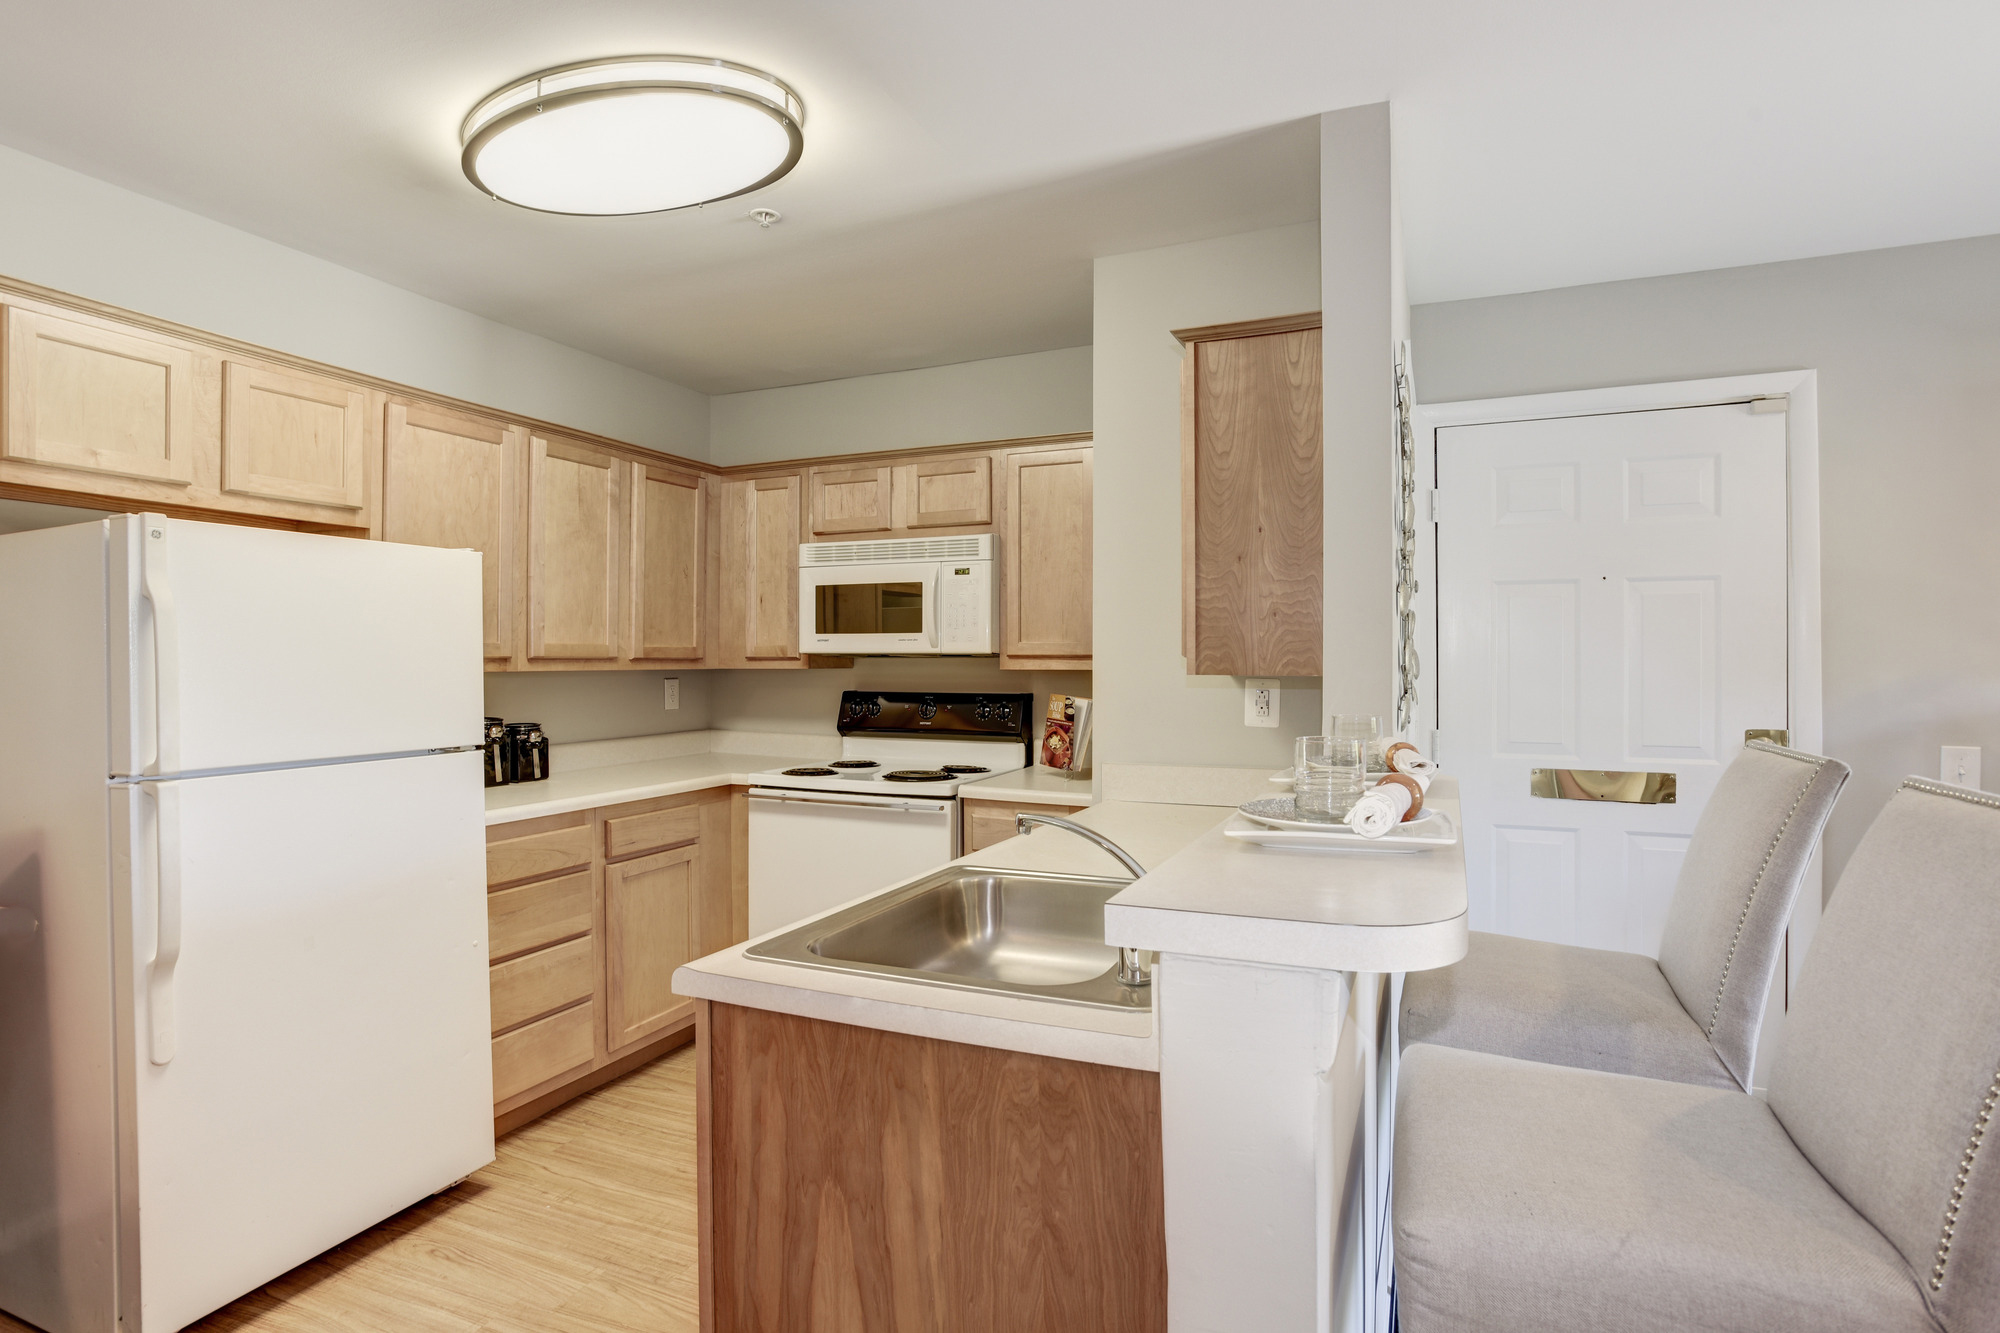 Fox Run Apartments in Edgewood, MD 21040: Kitchen with Breakfast Bar